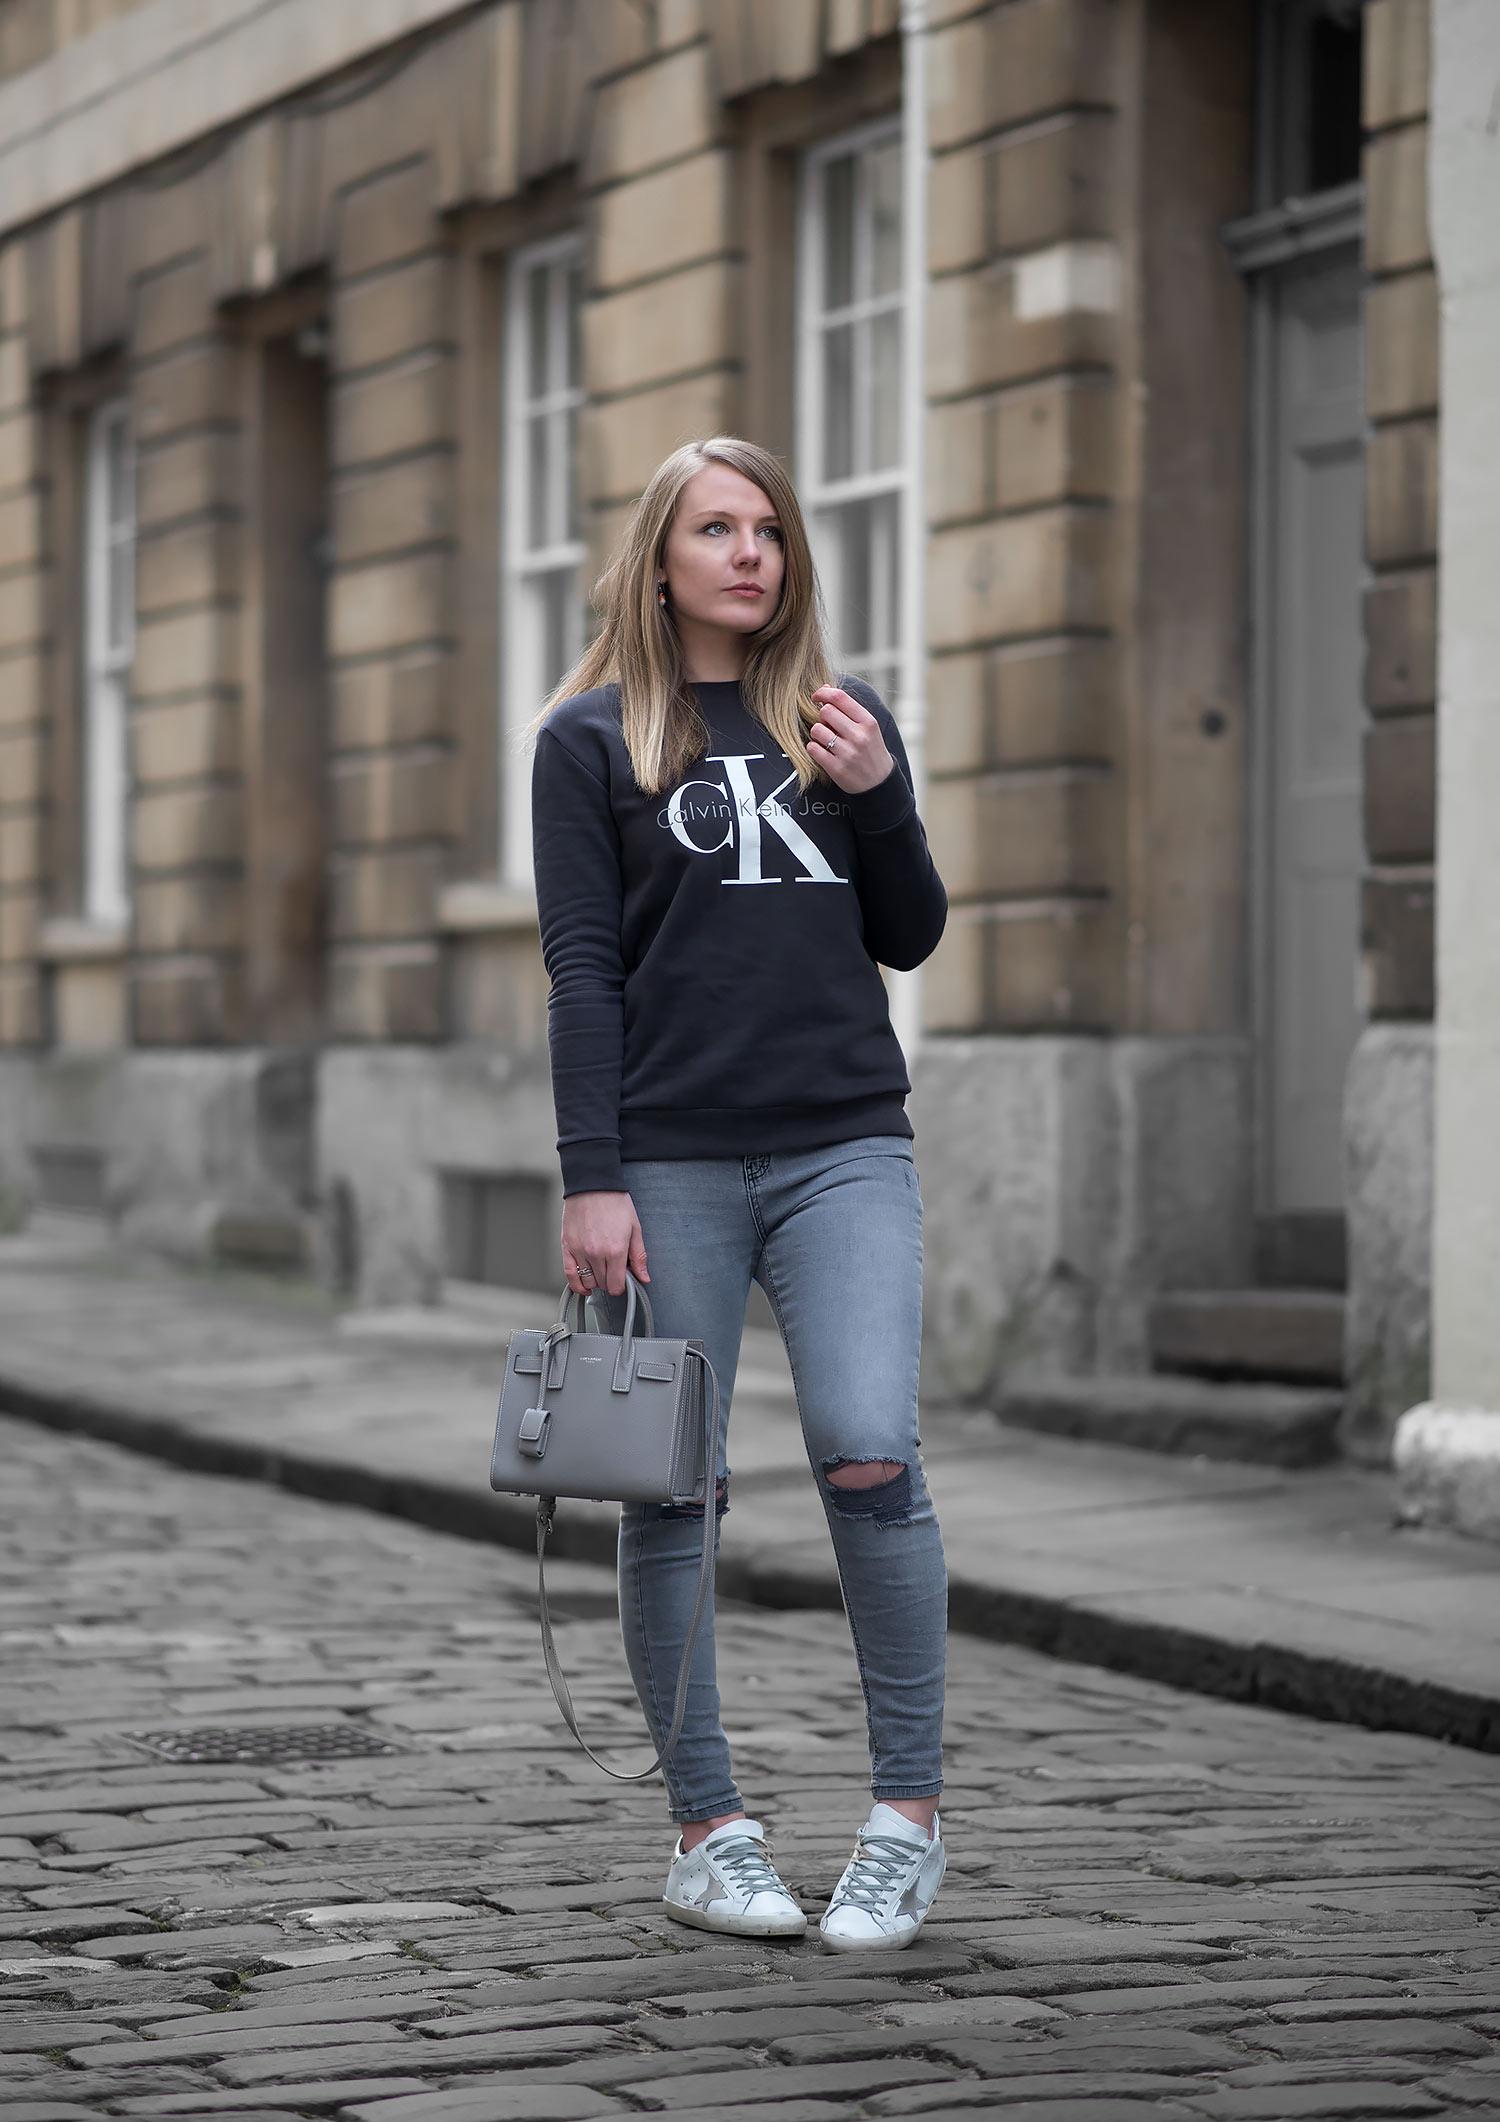 c95be310f1d Calvin Klein Logo Sweatshirt With Skinny Jeans Outfit